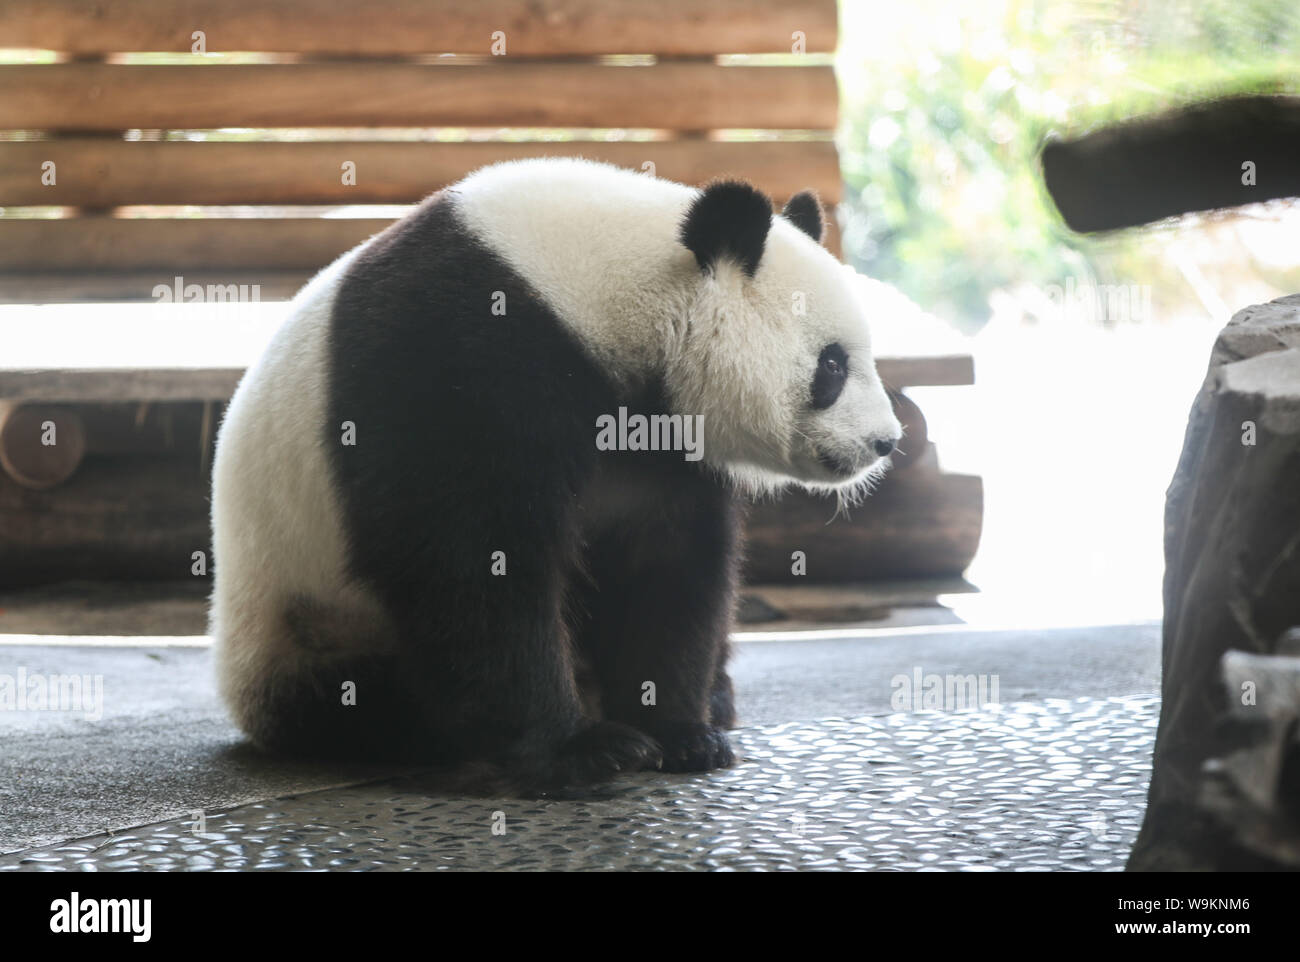 Berlin. 14th Aug, 2019. Photo taken on Aug. 14, 2019 shows panda Meng Meng at the Zoo Berlin in Berlin, capital of Germany. Zoo Berlin is getting ready to welcome one or two newborn panda cubs as experts say it's very likely that the 6-year-old panda Meng Meng is pregnant. Credit: Shan Yuqi/Xinhua/Alamy Live News Stock Photo